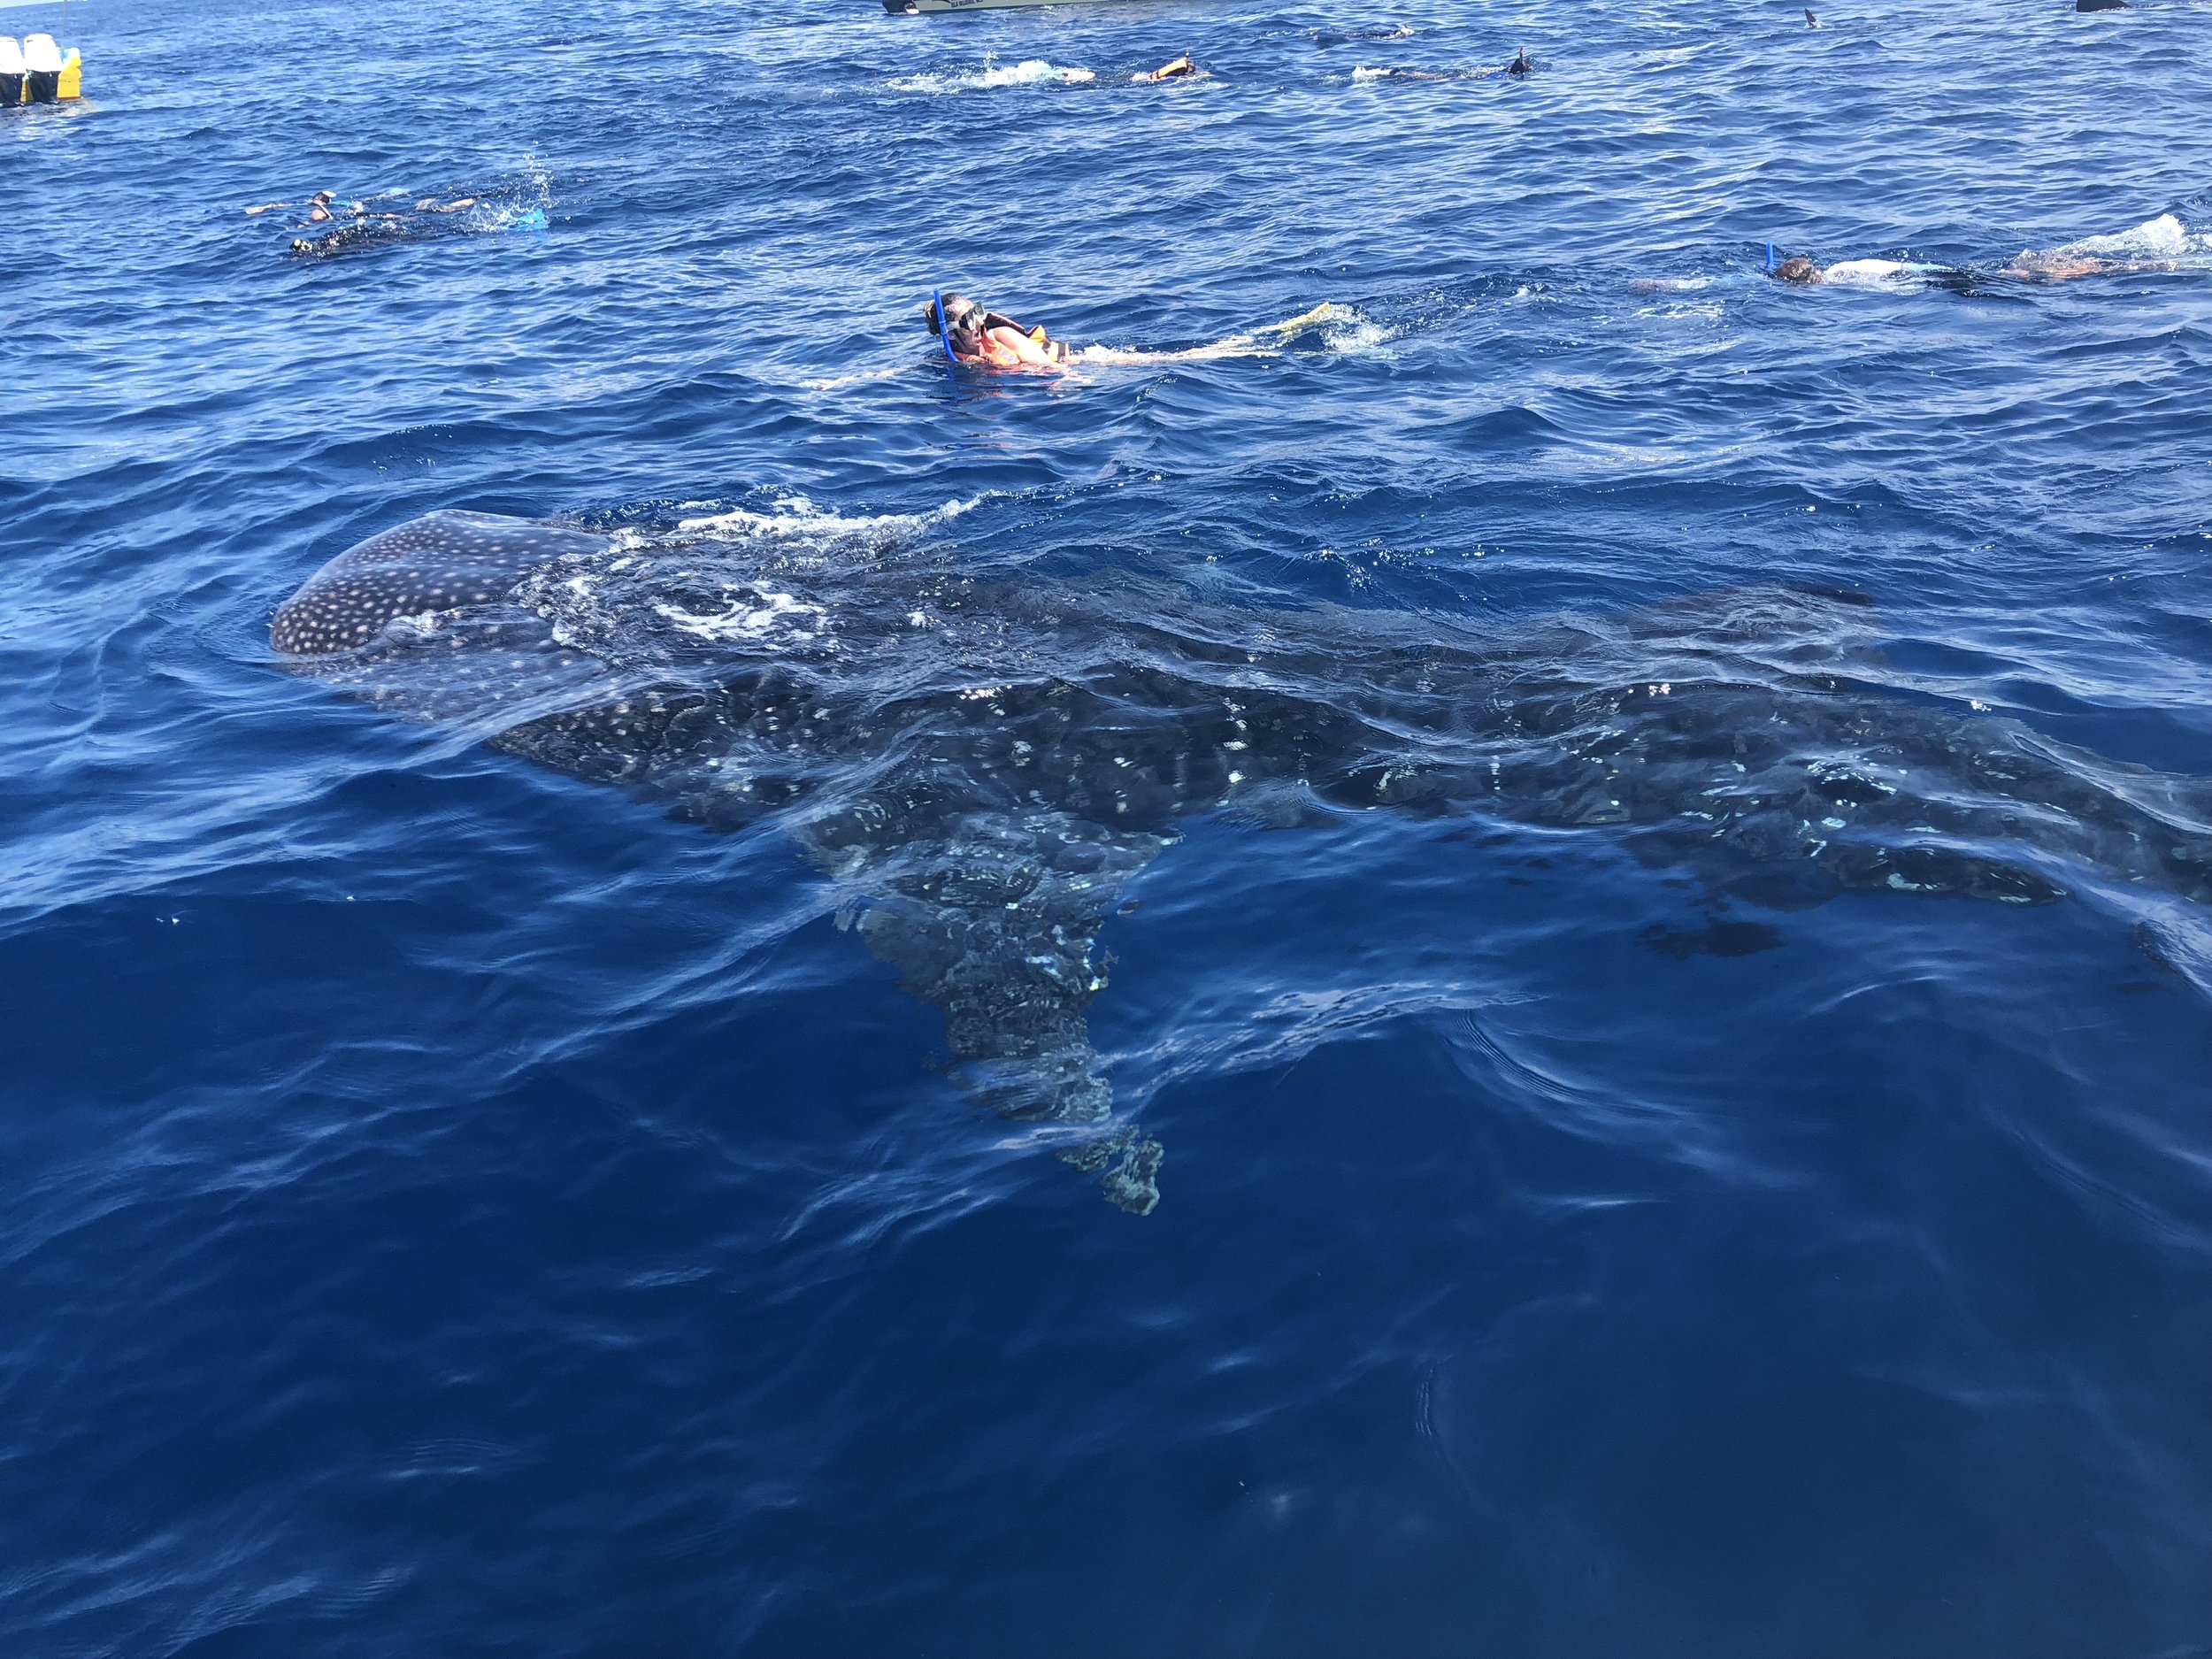 Whale sharks in Isla mujeres. The perfect honeymoon destination for the adventurous couple.